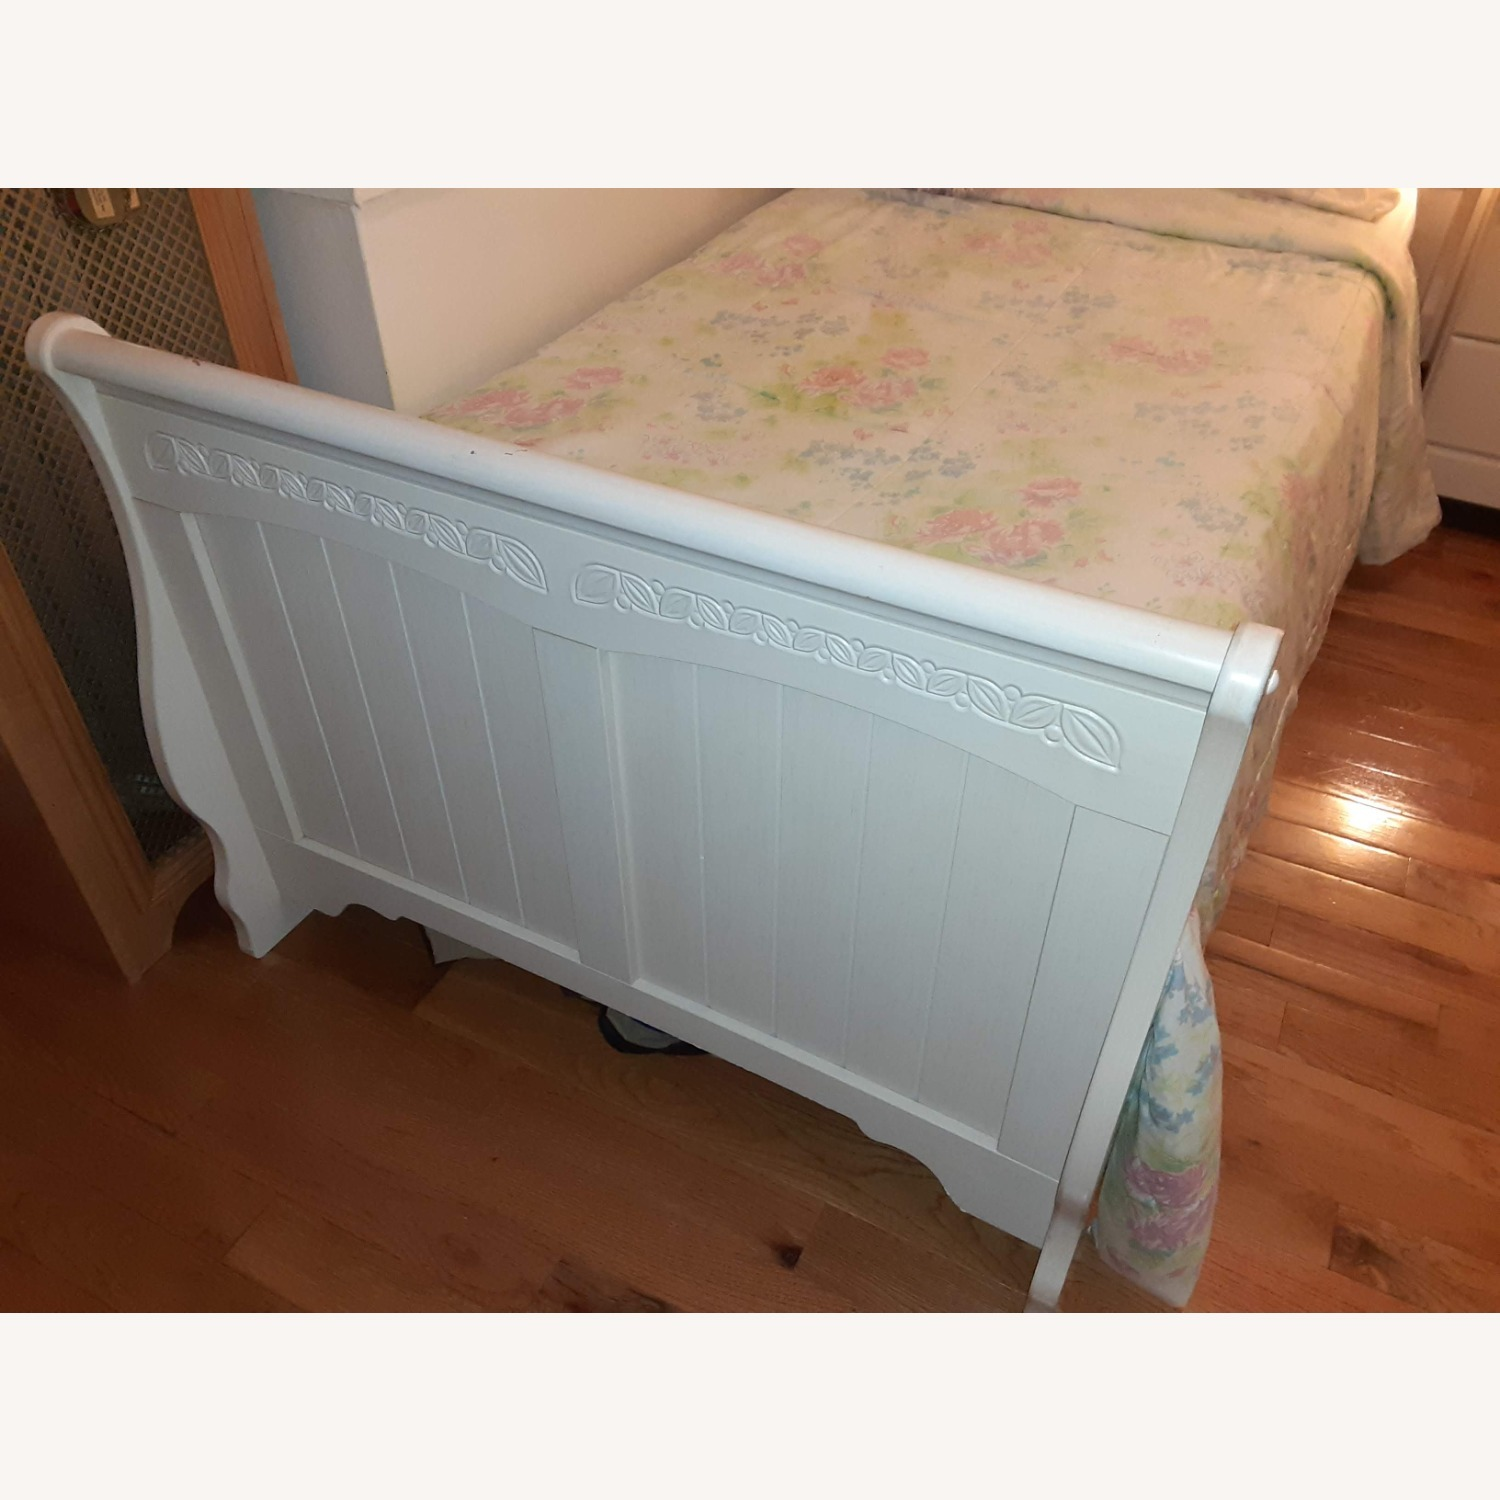 Ashely Furniture Twin Bed Frame - image-3